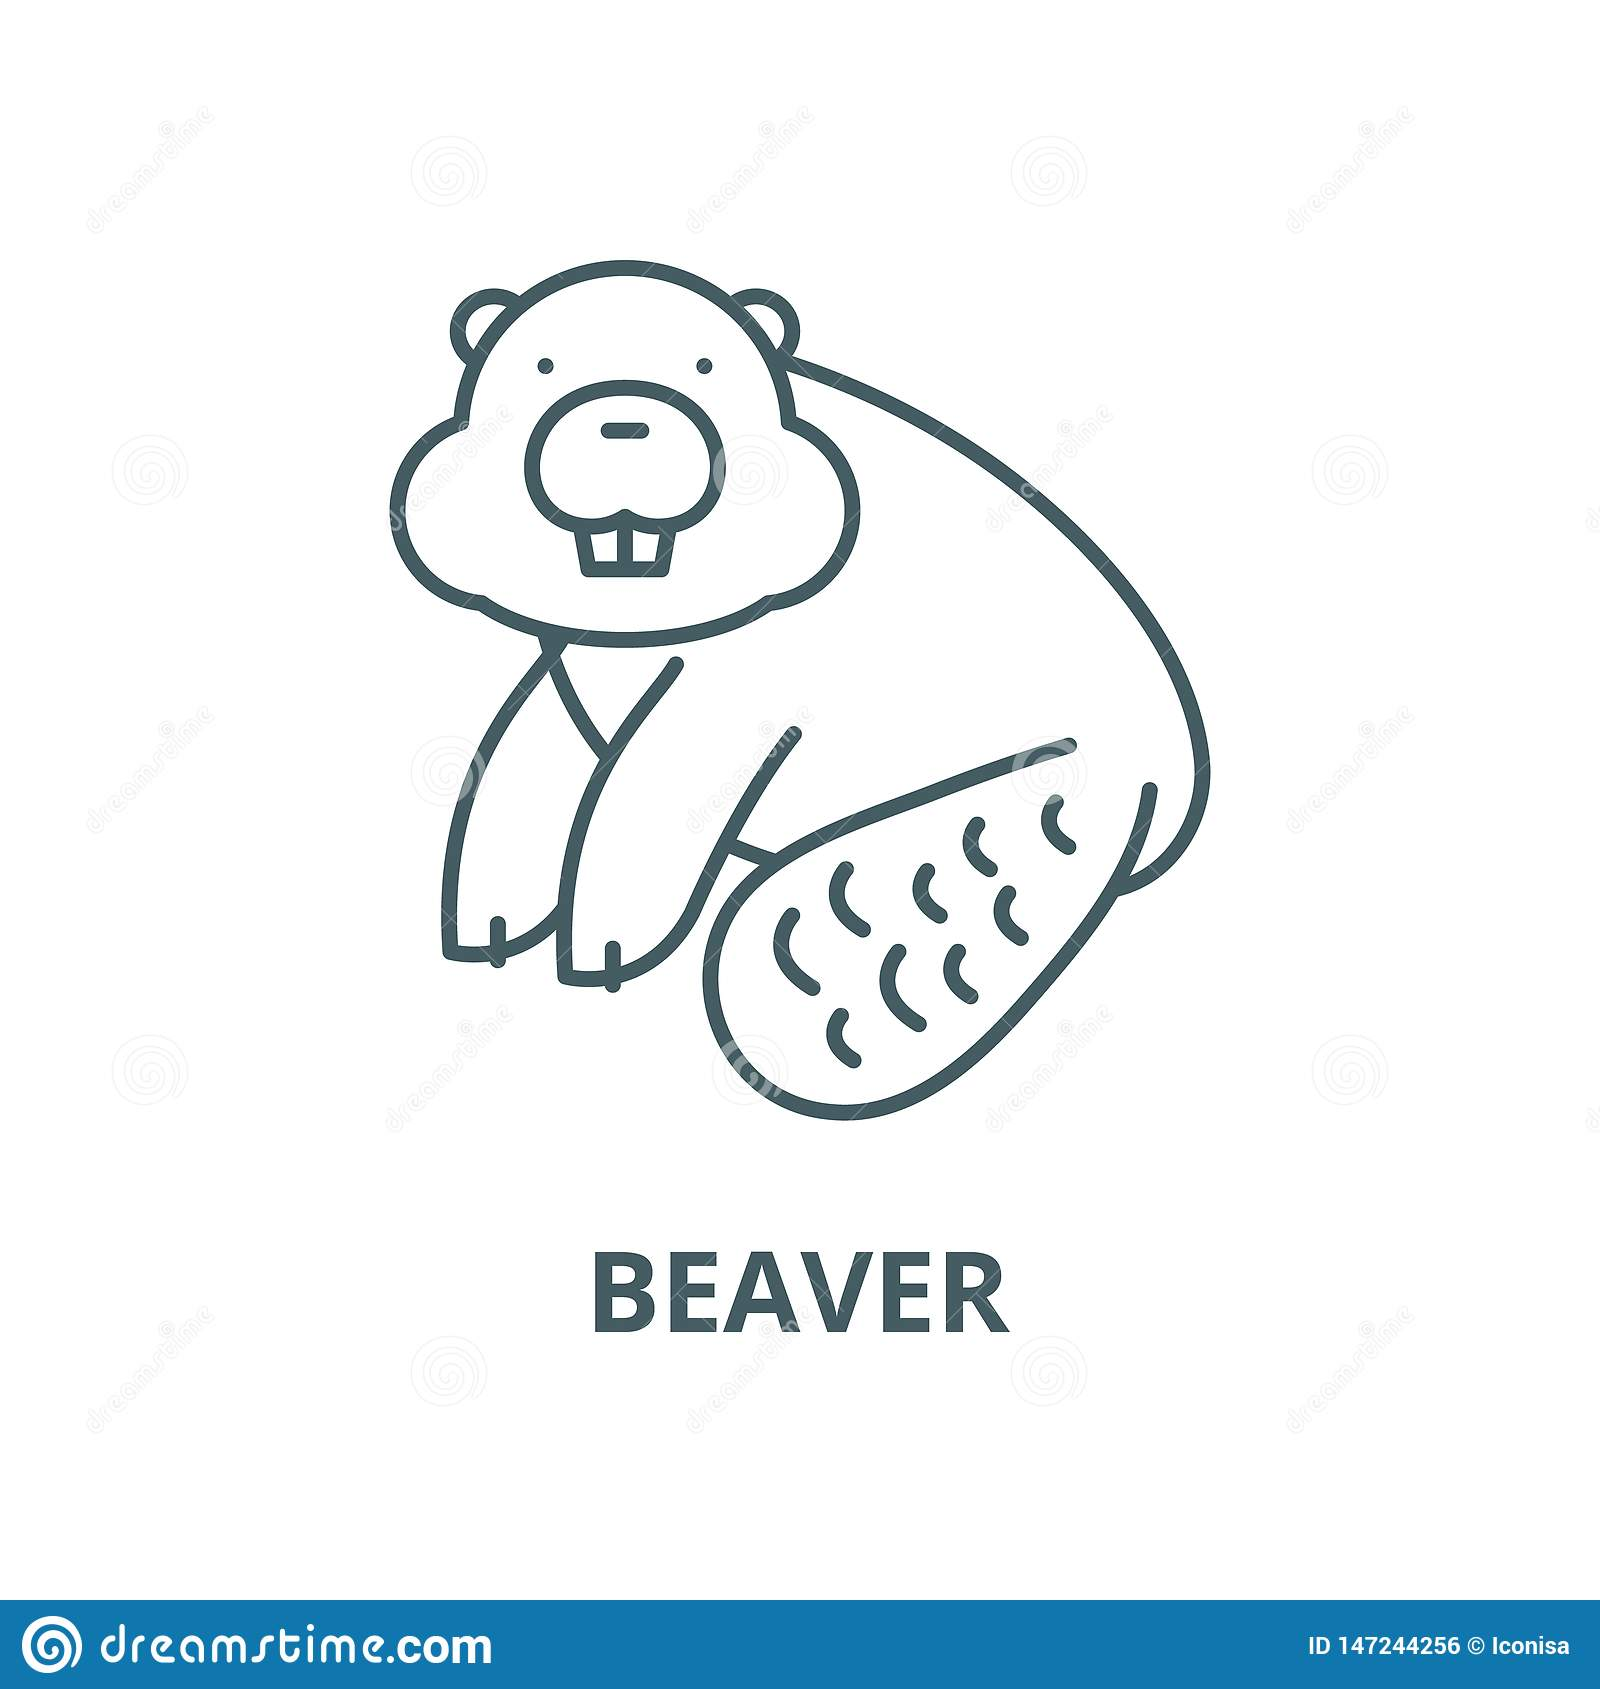 Beaver vector line icon, linear concept, outline sign, symbol